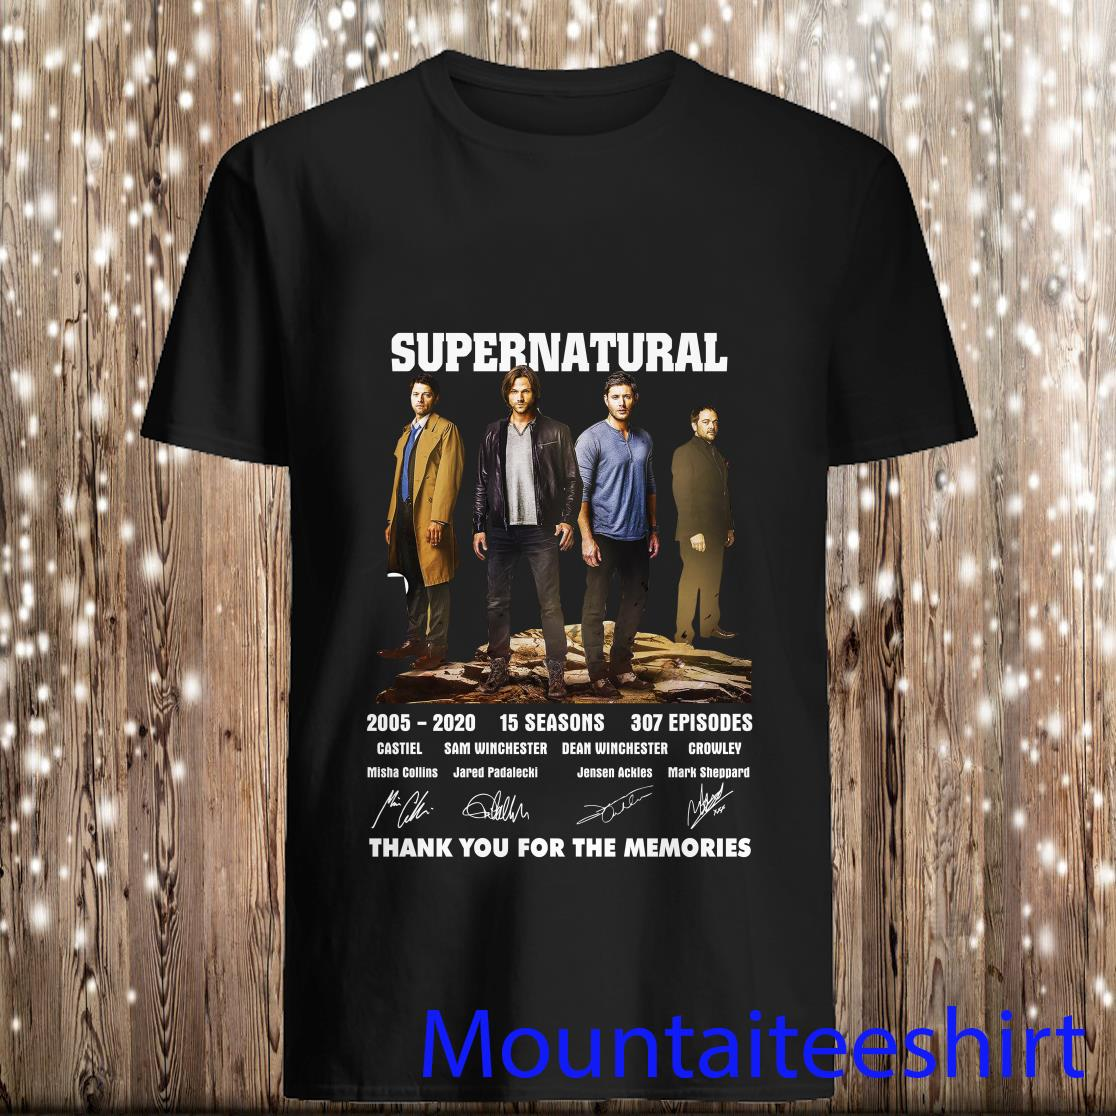 Supernatural 2005 2020 15 Seasons 307 Episodes Thank You For The Memories Shirt